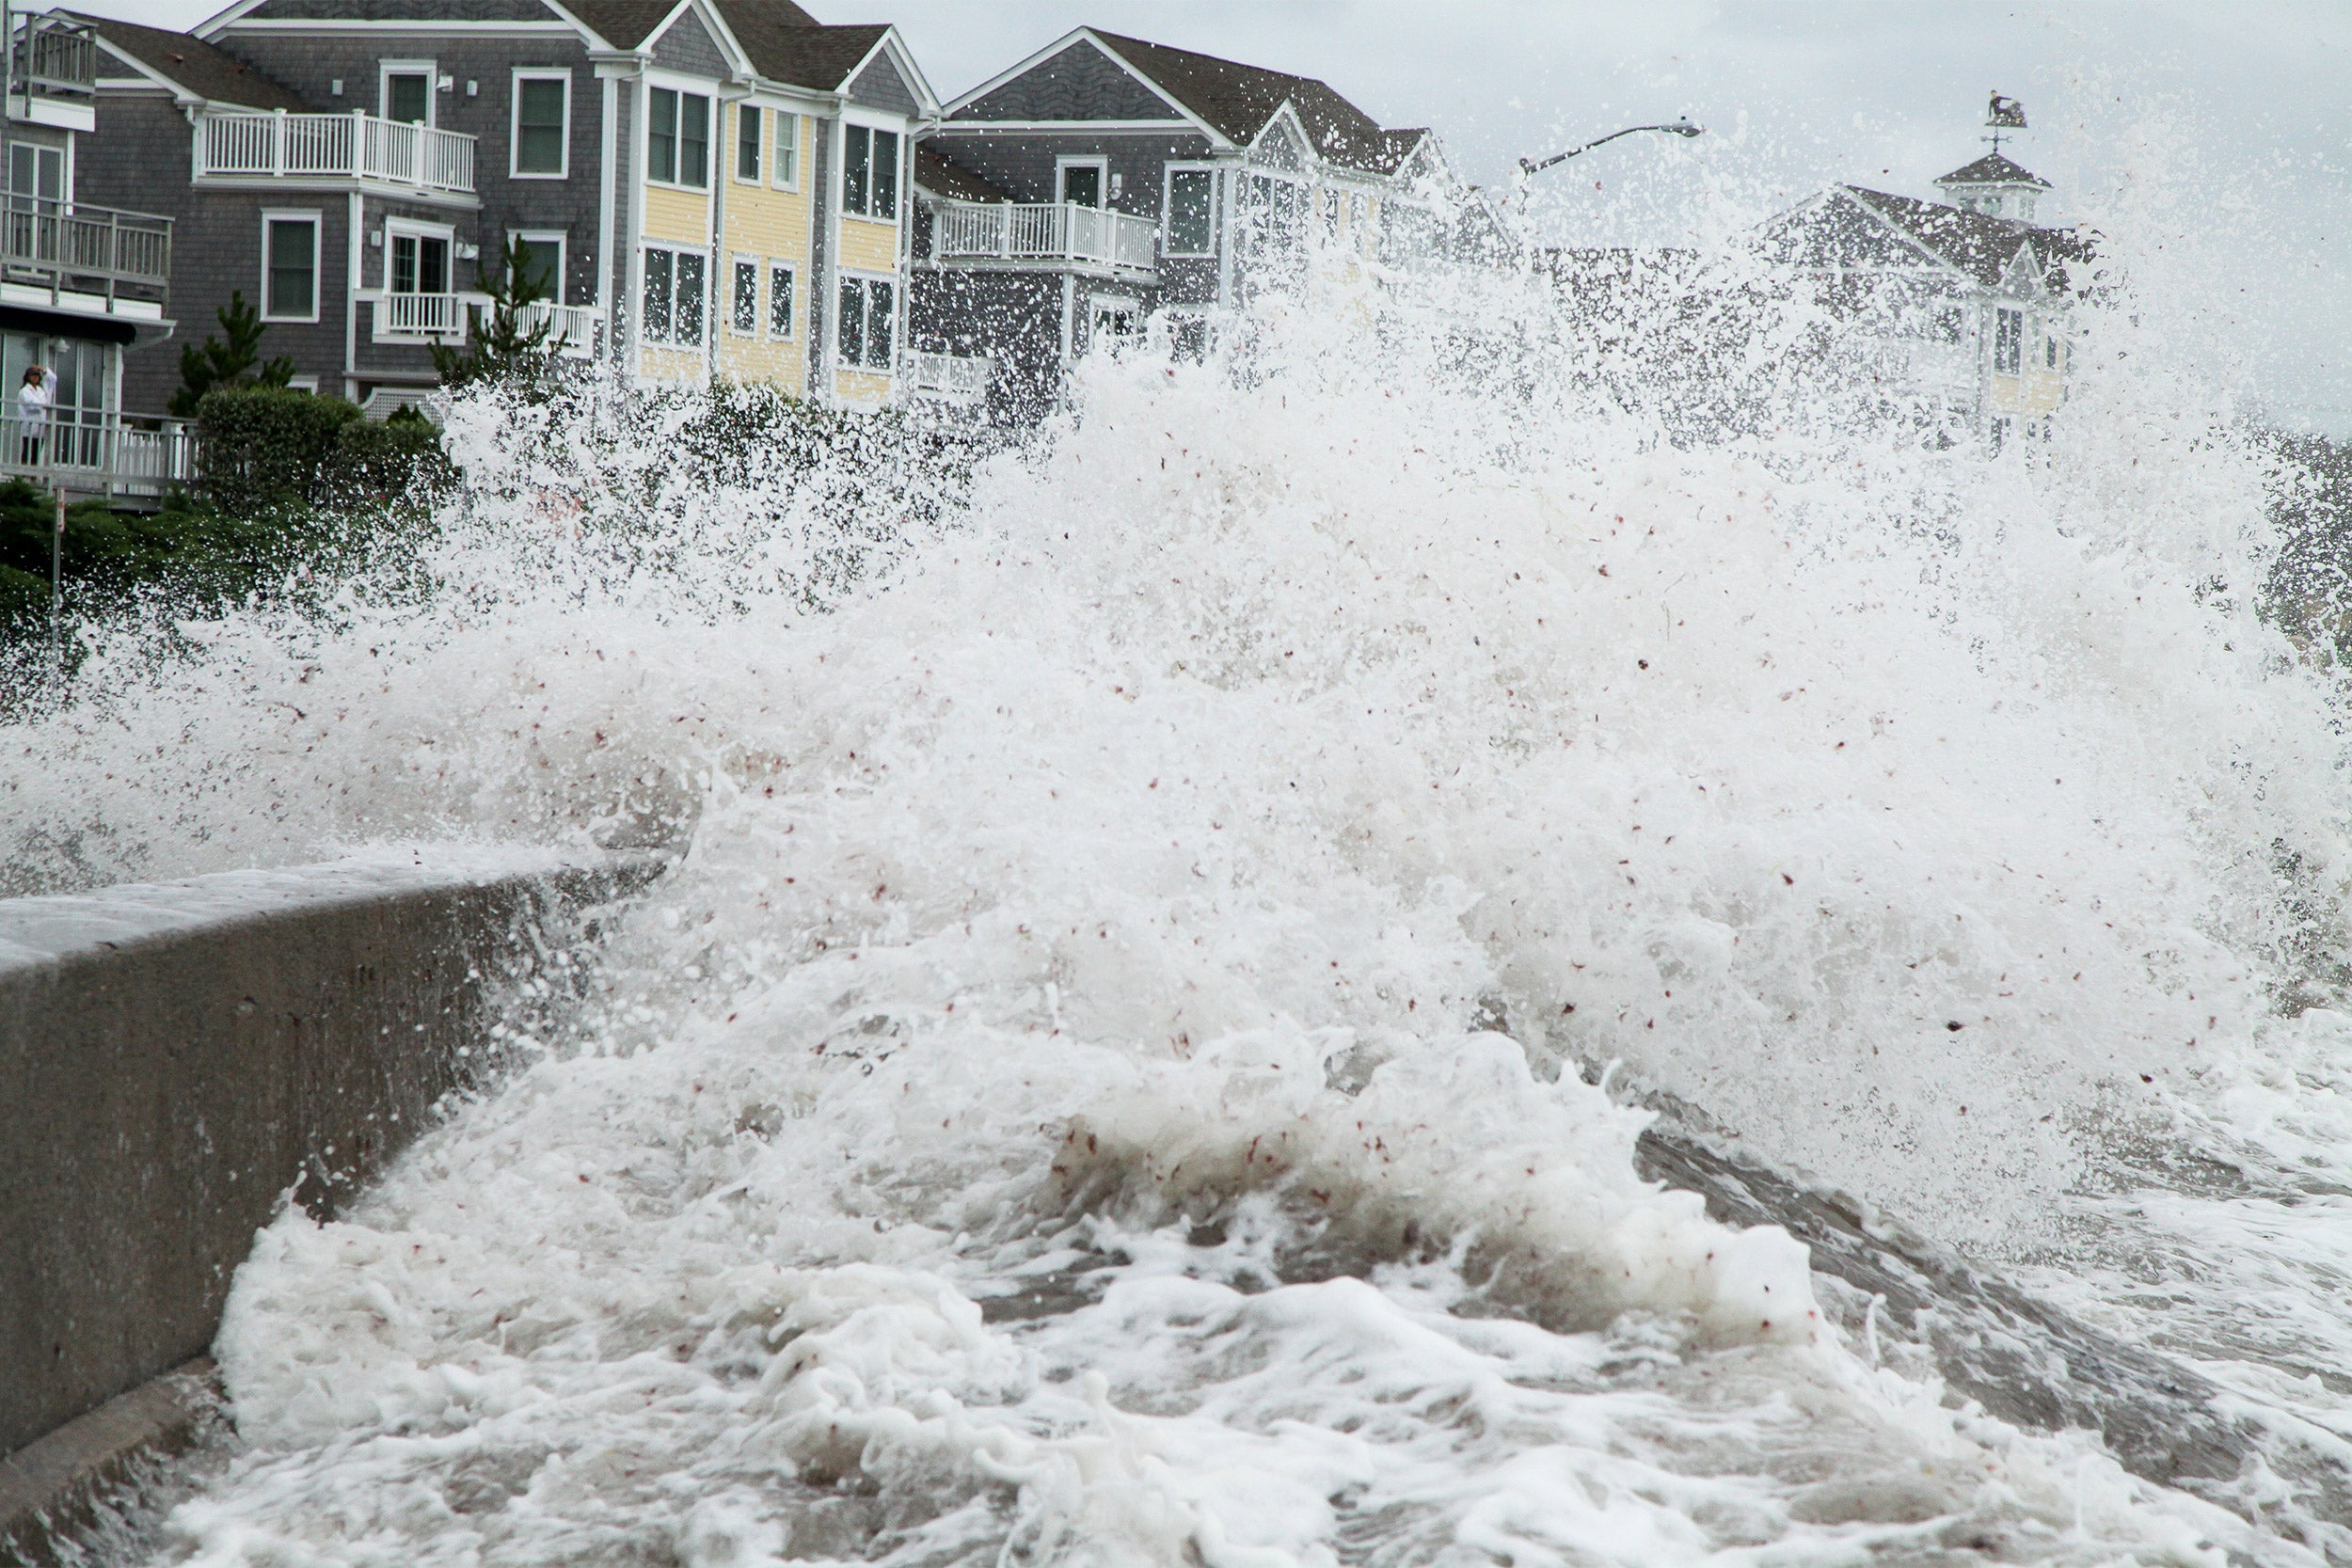 Storm surge hitting houses along coast.